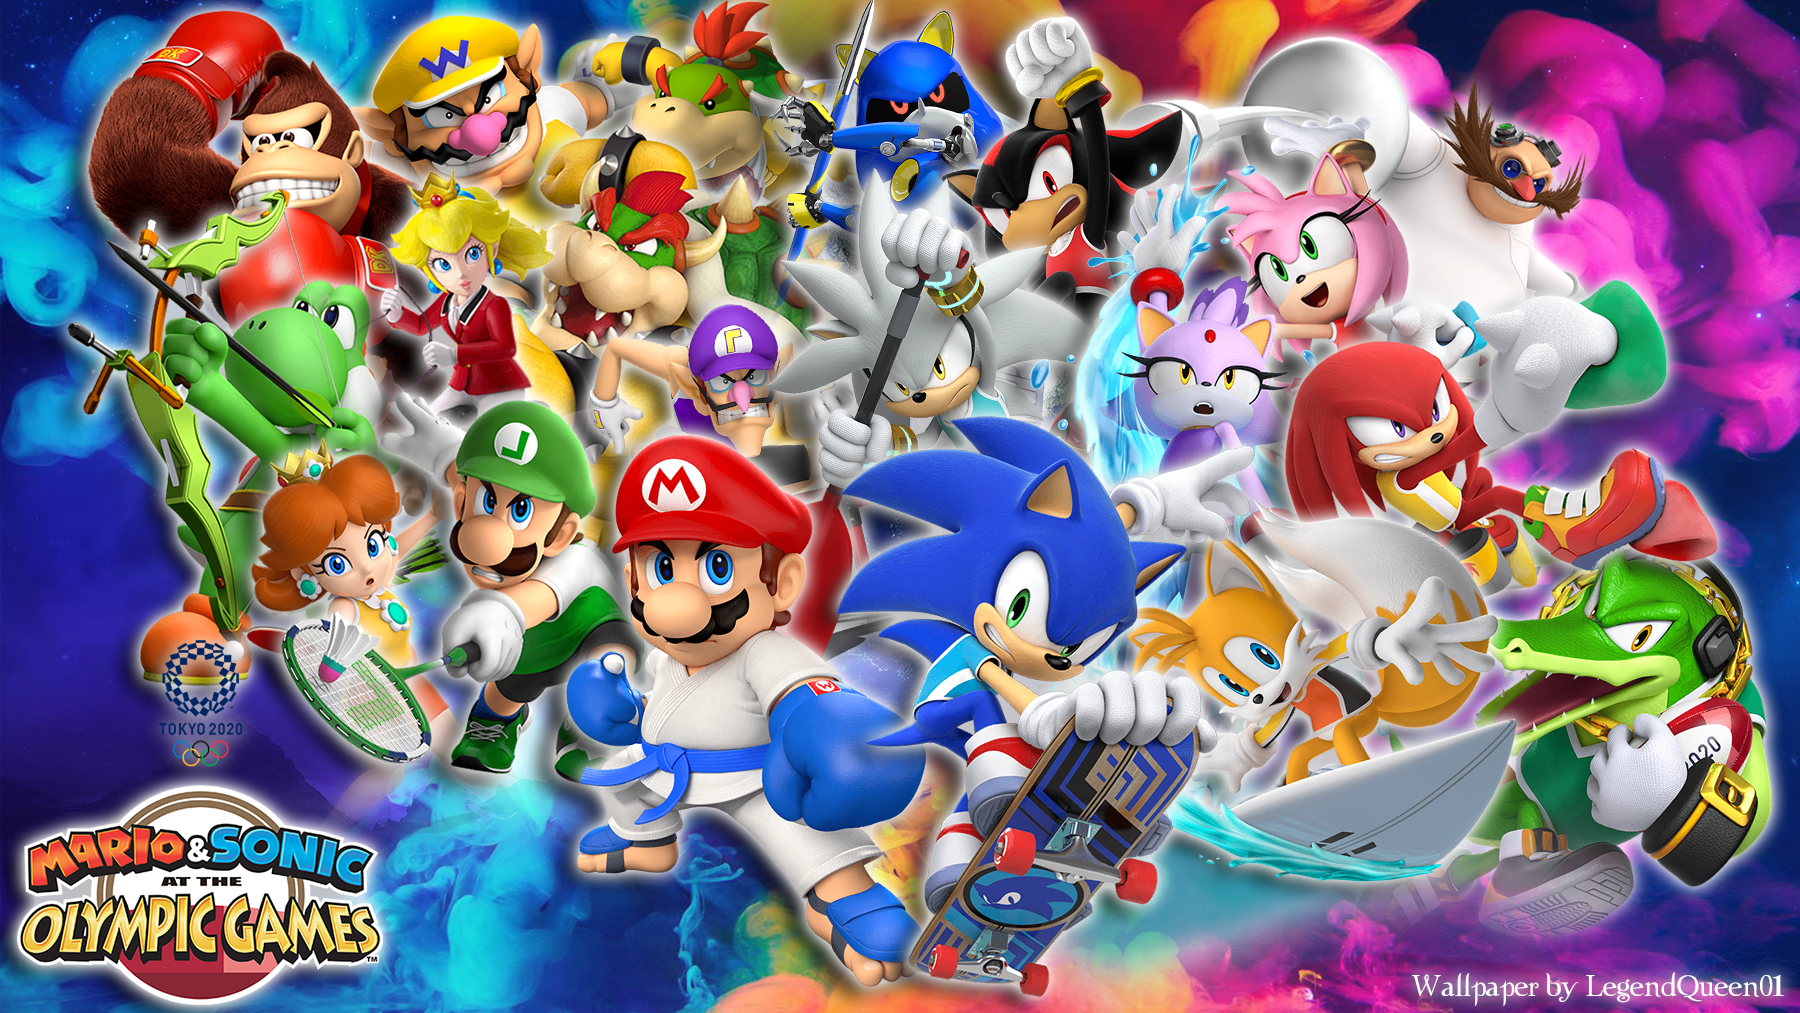 Mario And Sonic At The Olympic Games 2020.Wallpaper Mario Sonic At The Olympic Games 2020 By